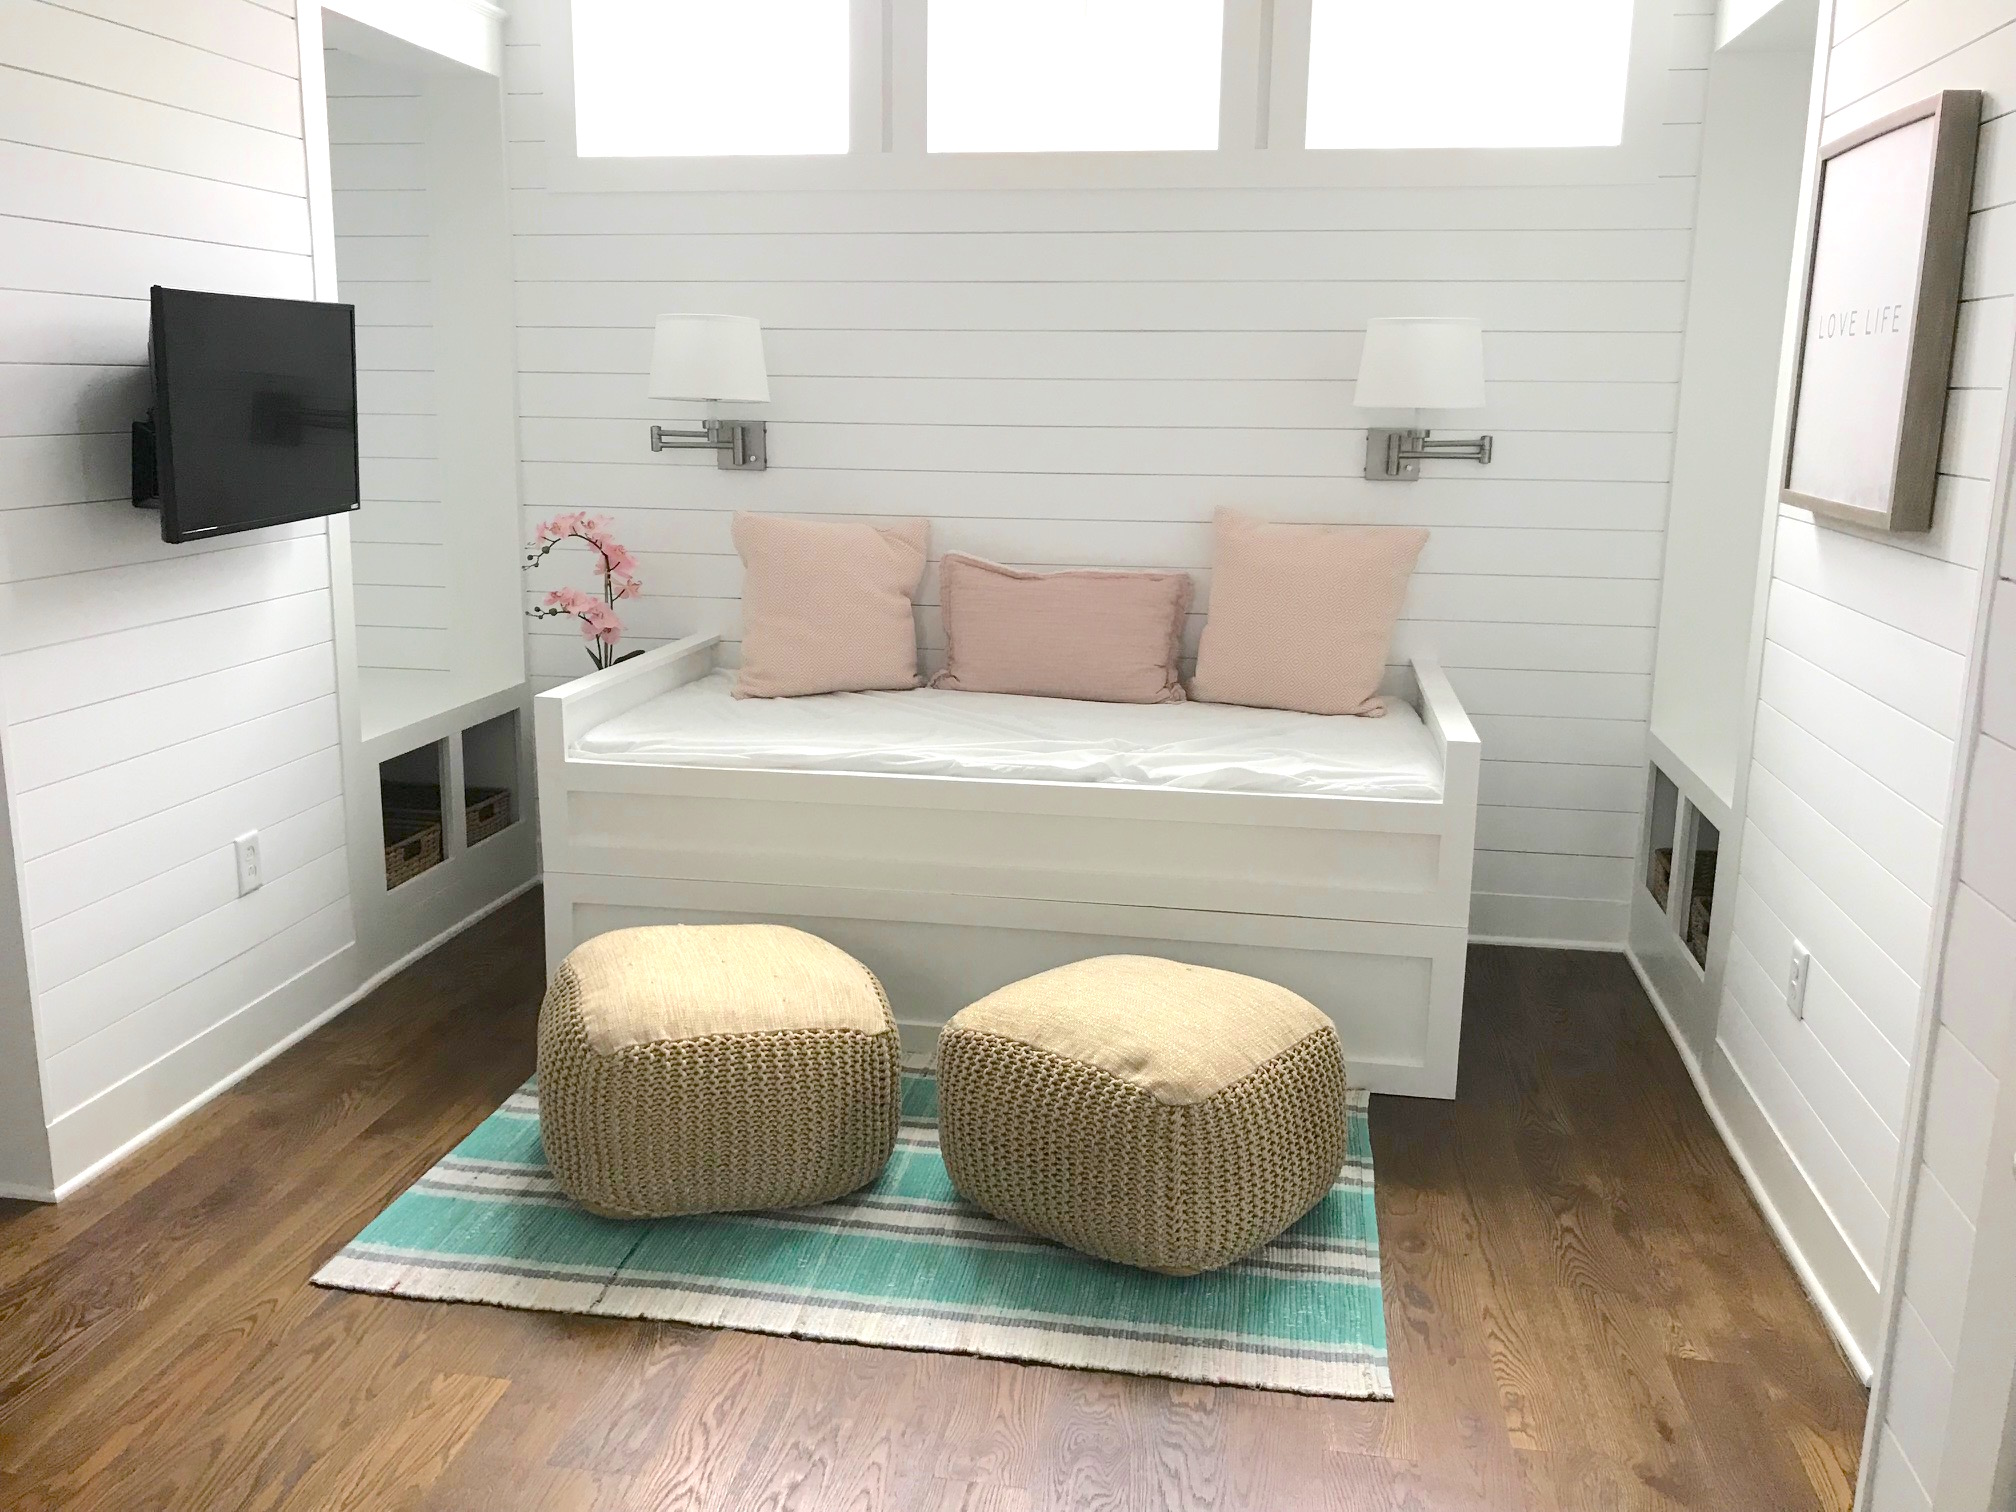 Newly built in bed at the top of the stairs